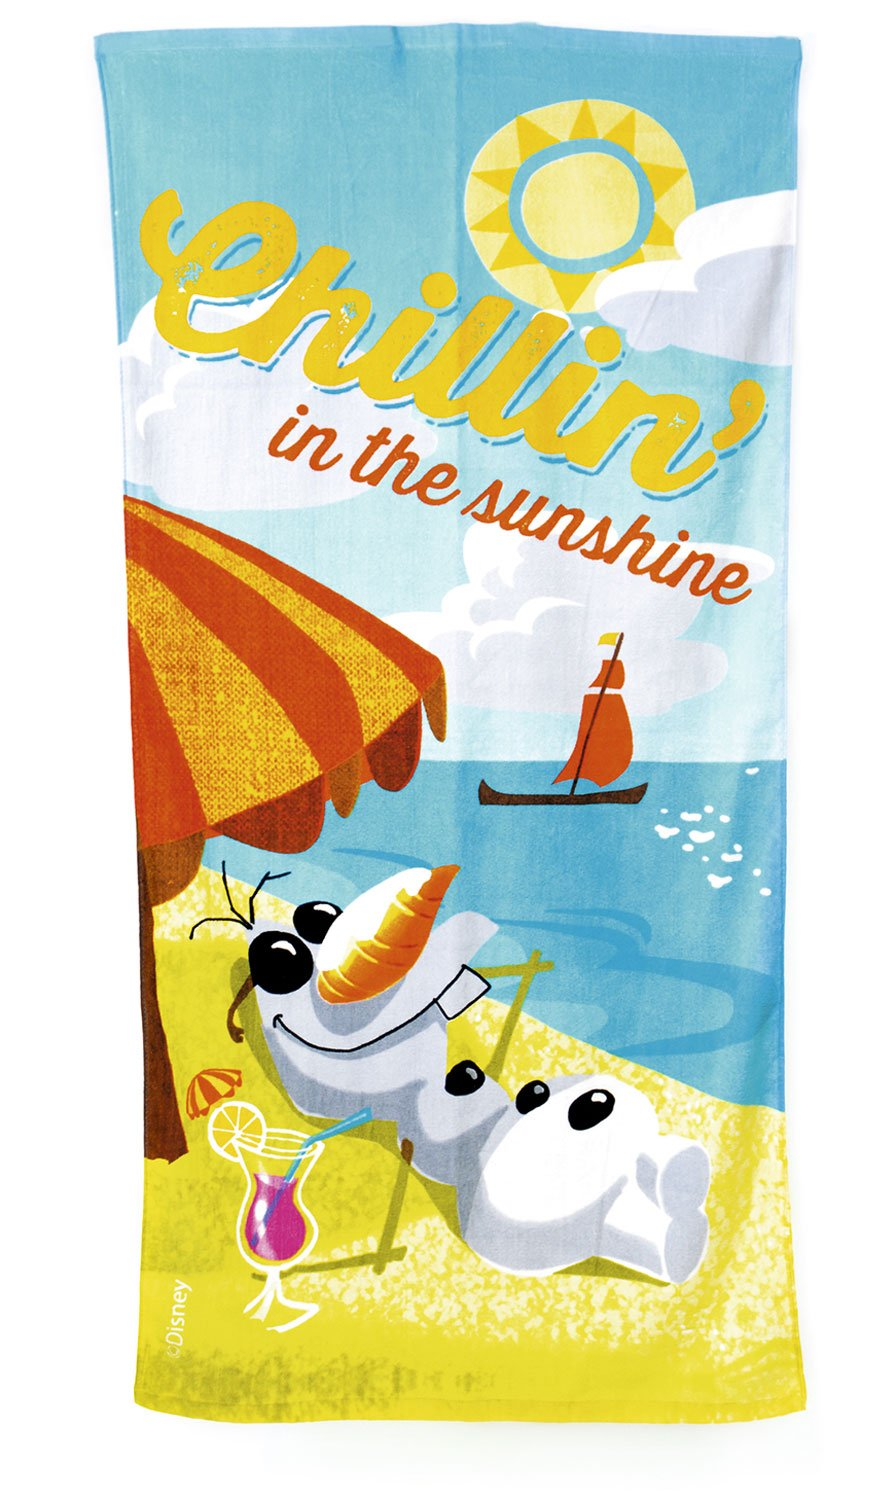 Disney Frozen 140 x 70 cm Olaf Chillin in the Sunshine Beach and Bath Towel MegaBrands WD15021